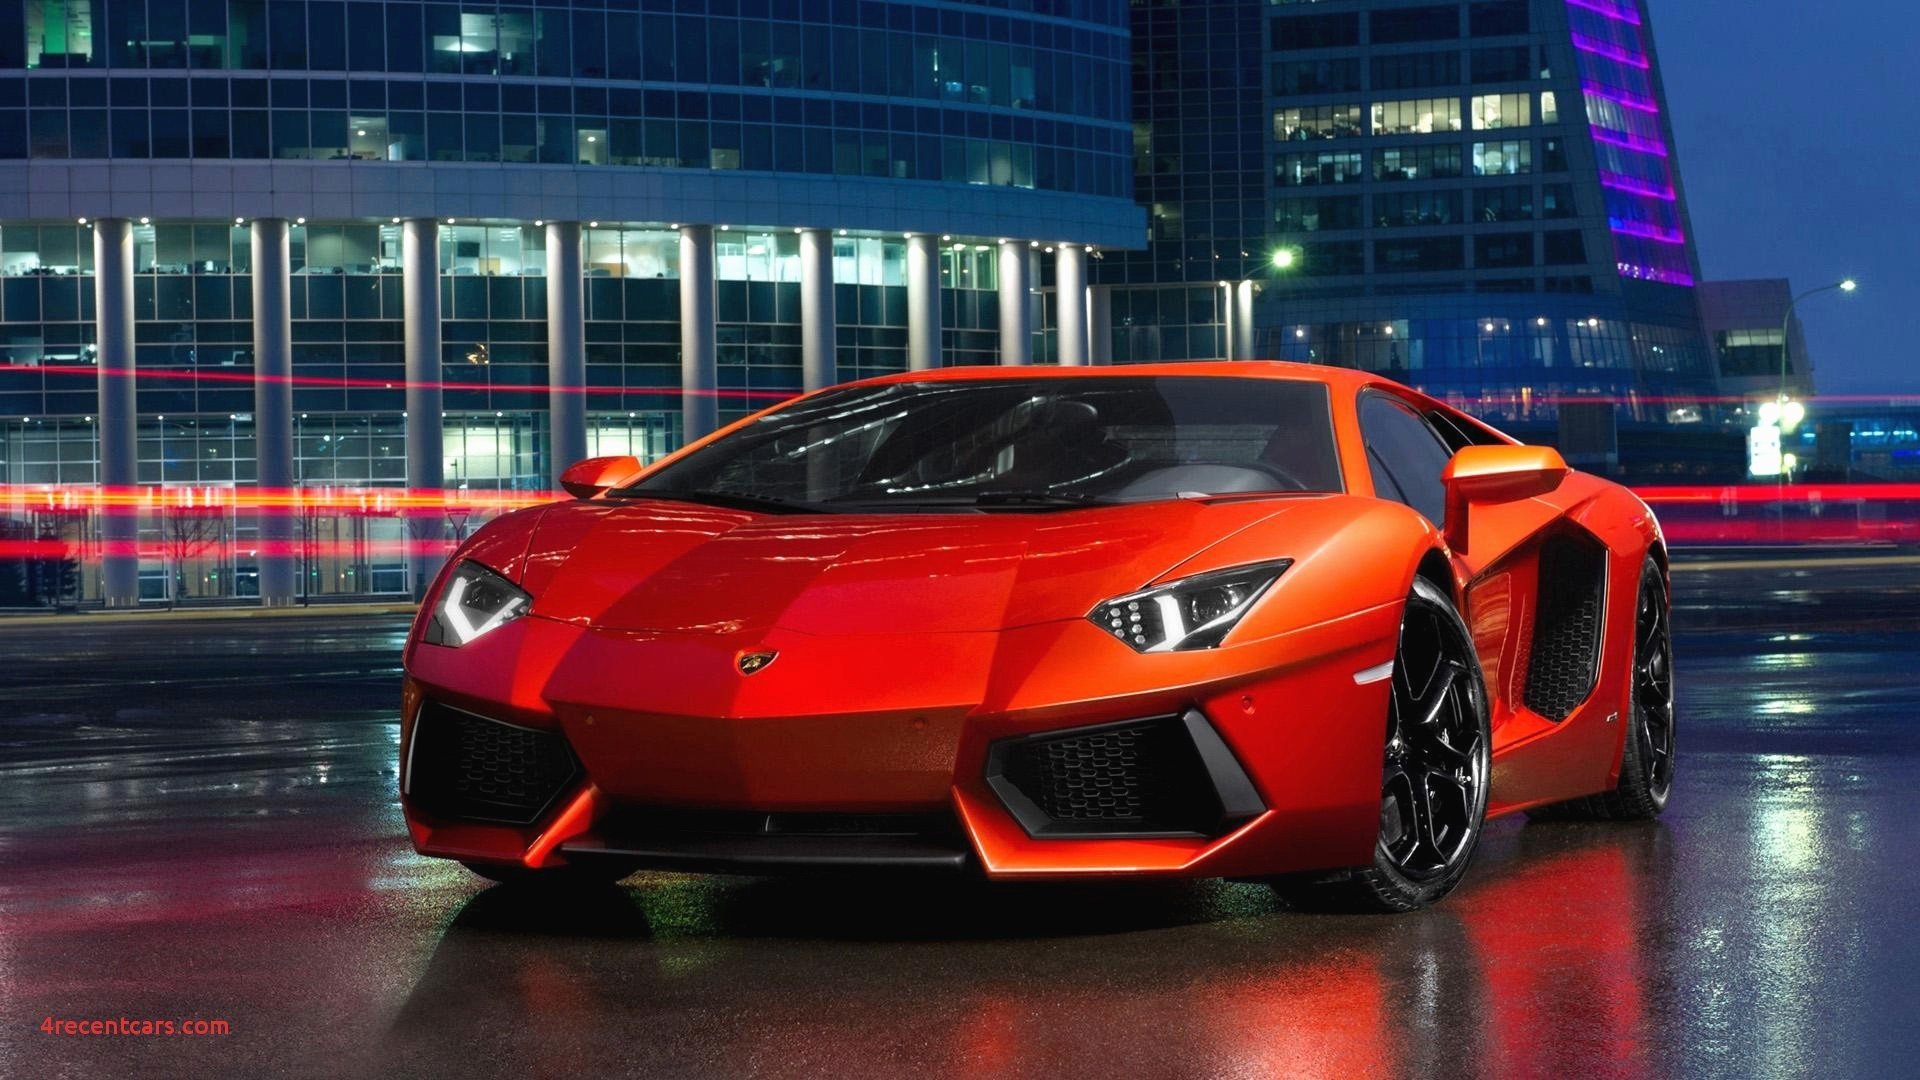 Res: 1920x1080, Live Wallpaper Of Cars Elegant 5 Awesome Cars Live Wallpaper Car Wallpaper  Hd